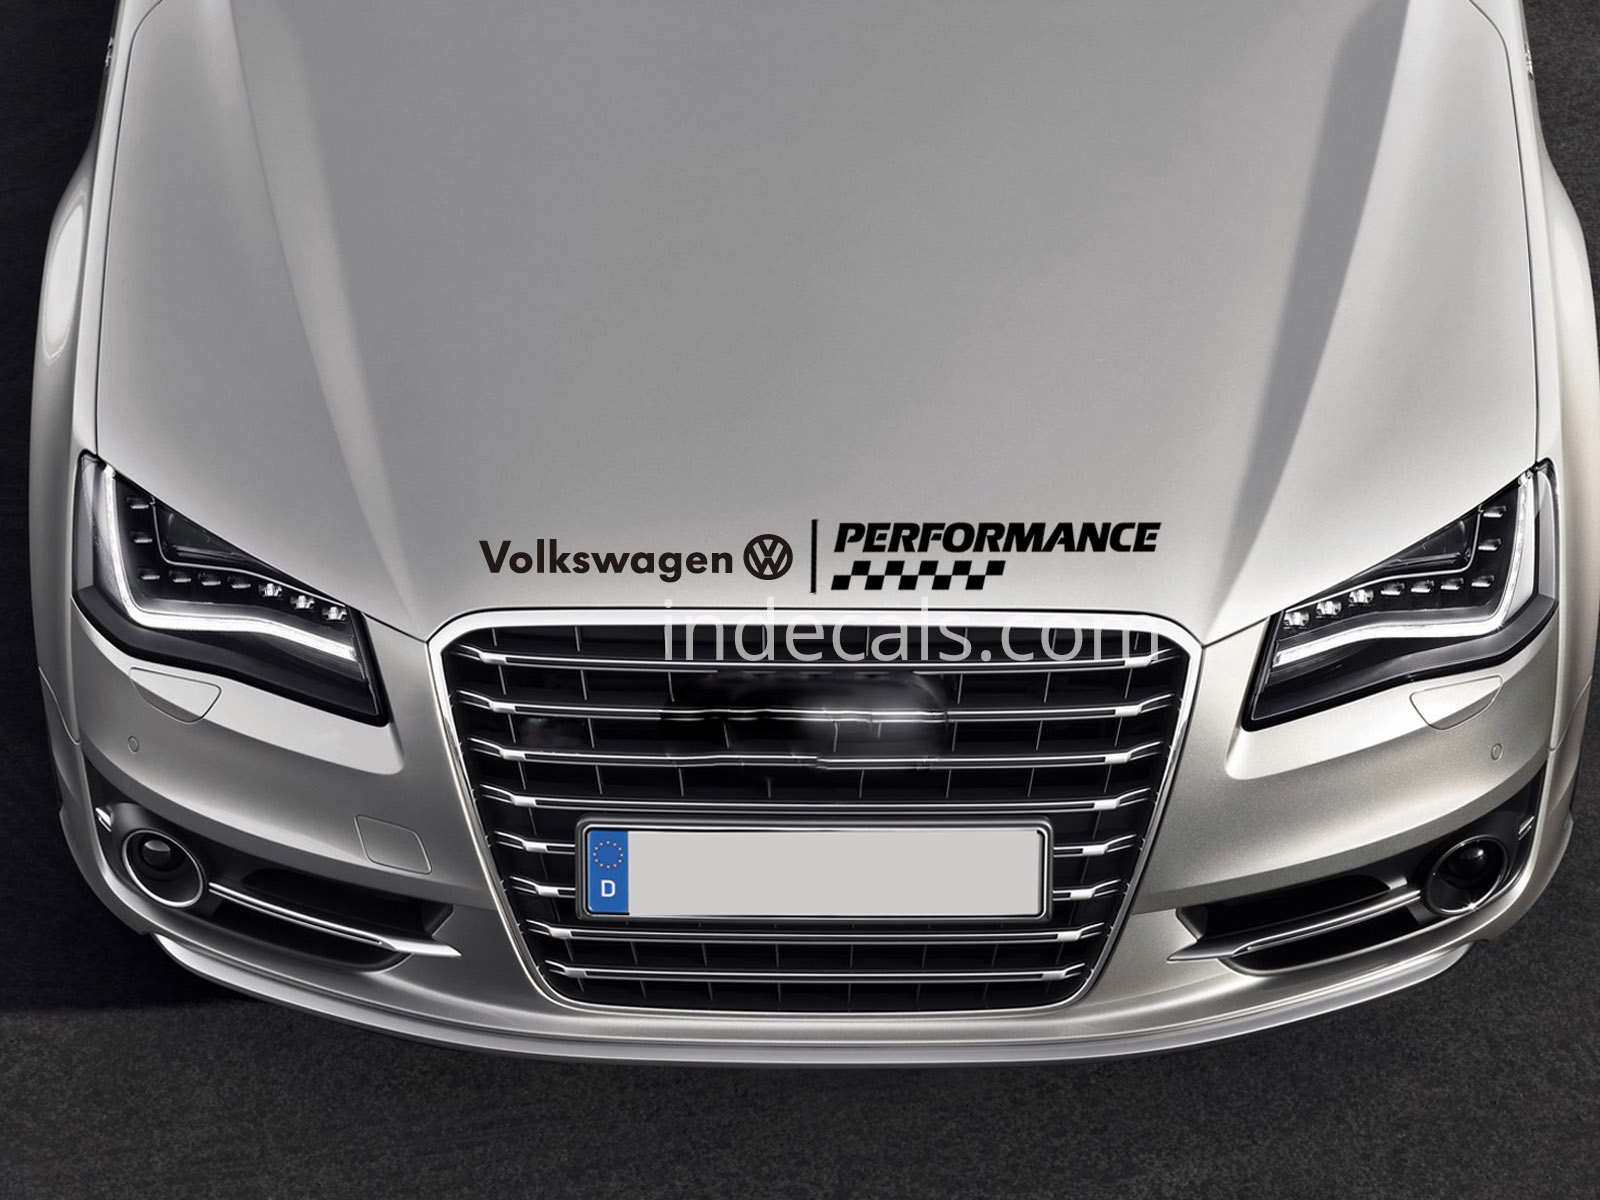 1 x Volkswagen Performance Sticker for Bonnet - Black